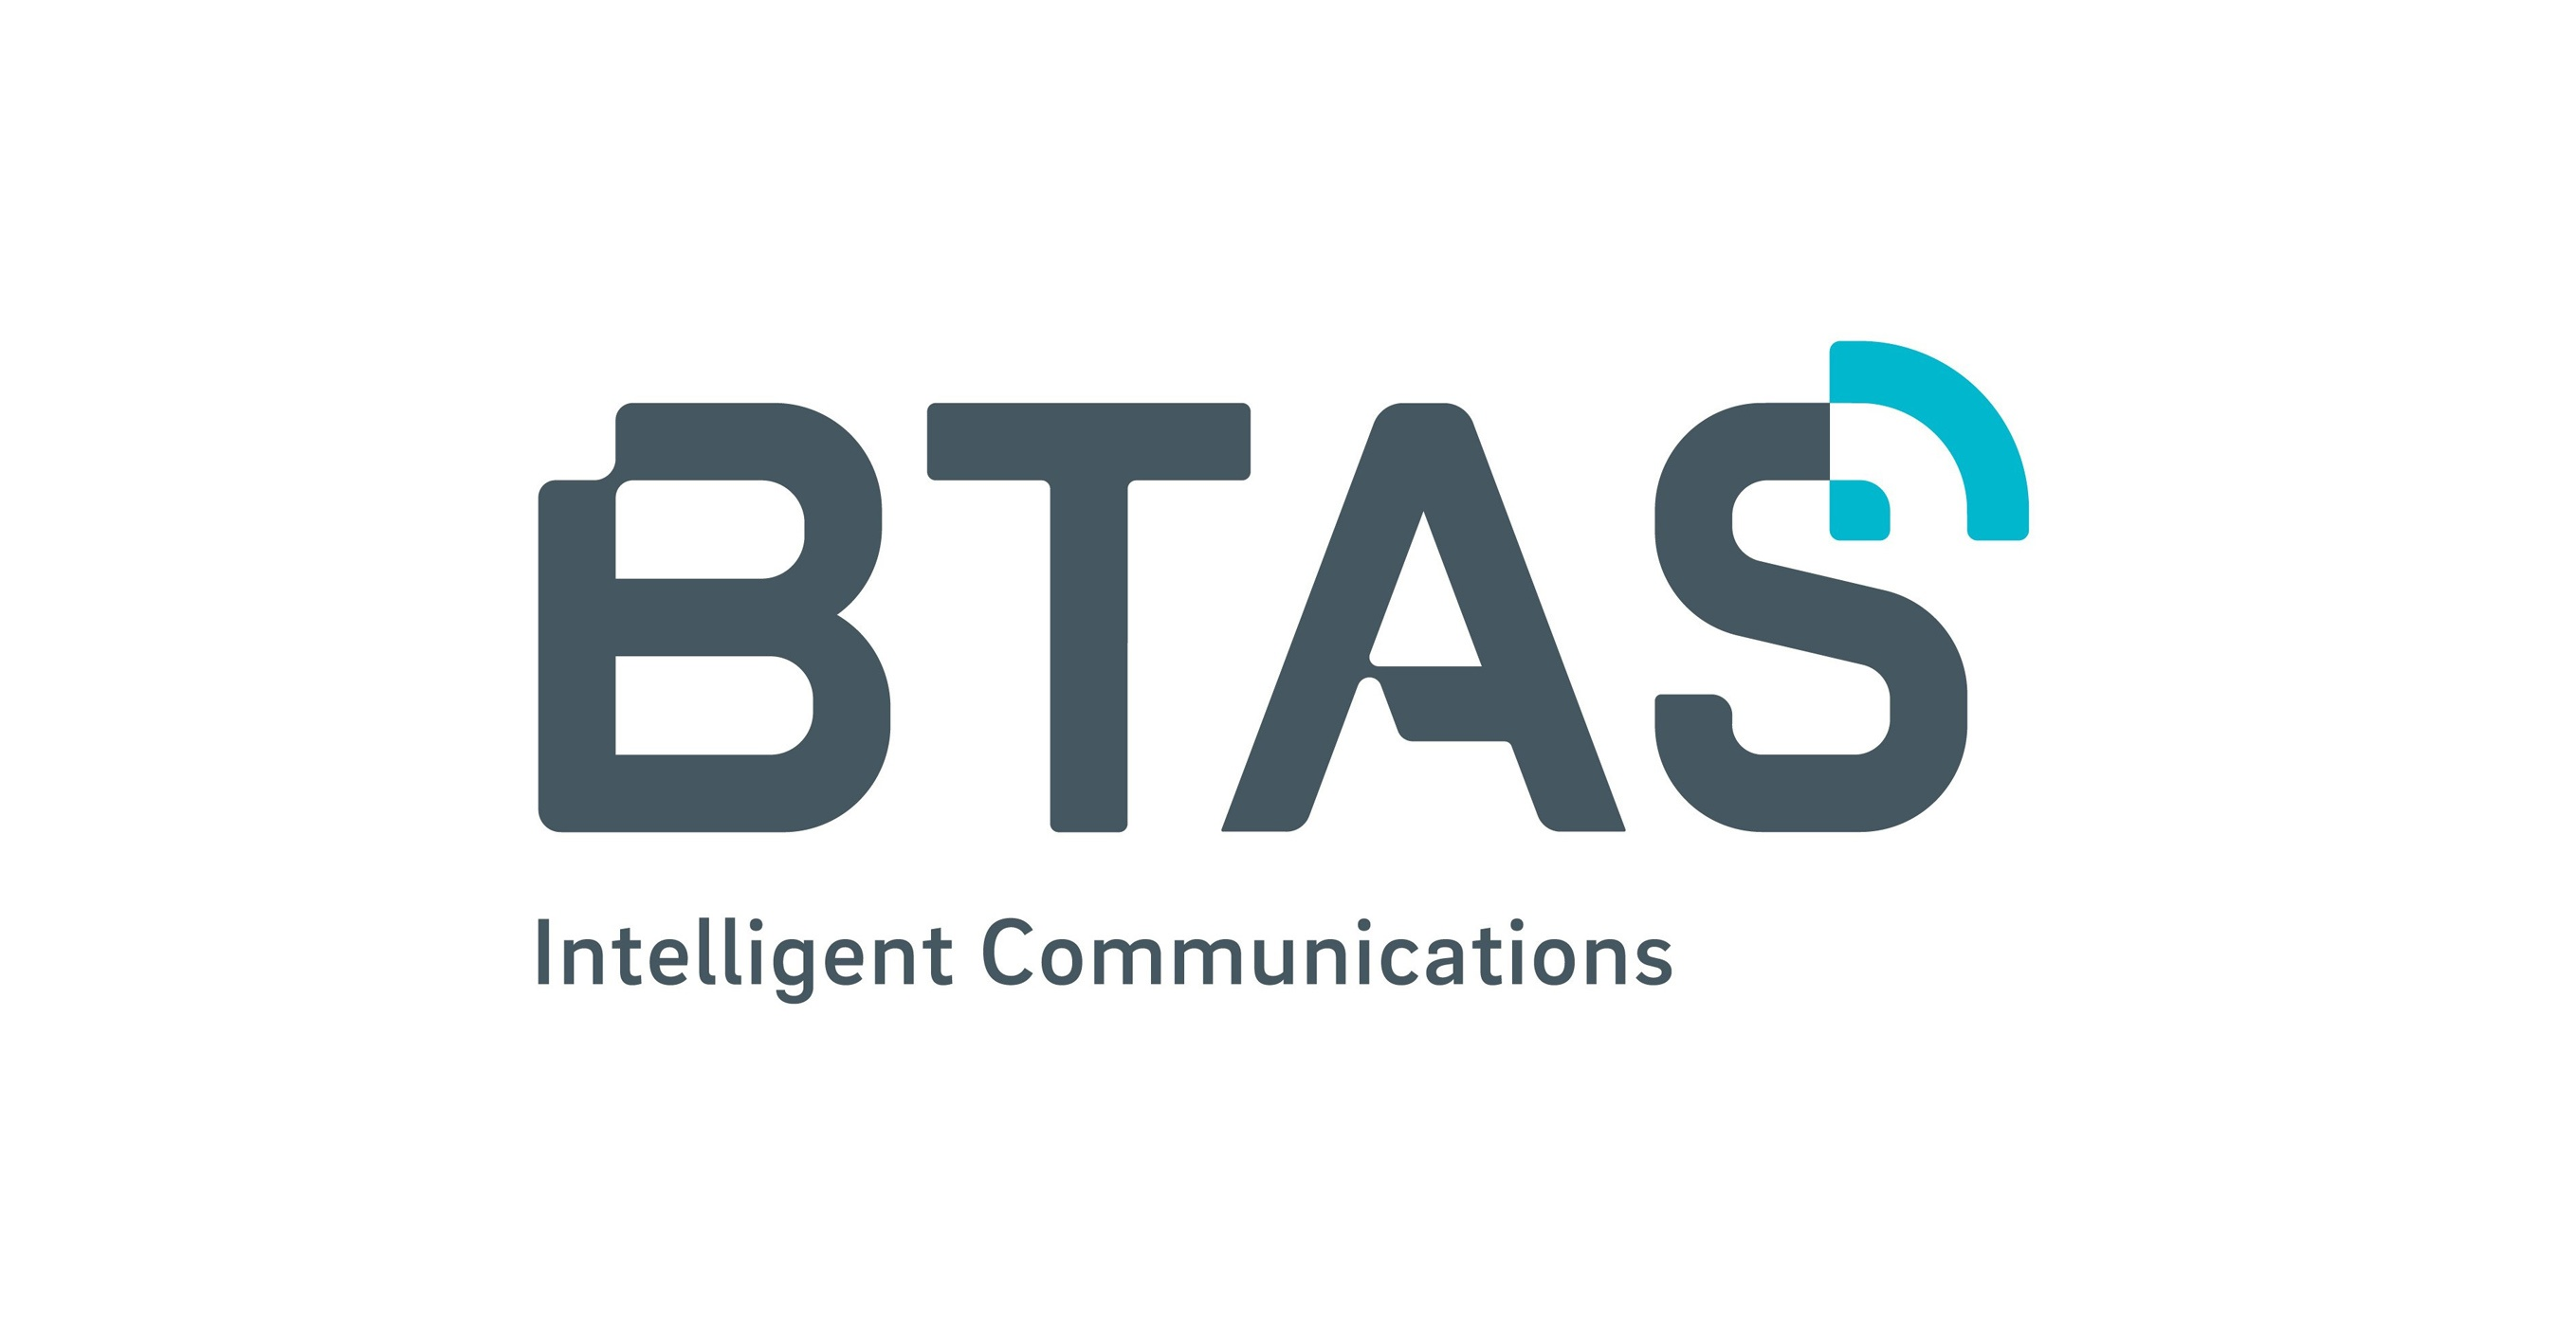 Update on imei merger with BTAS unified communications